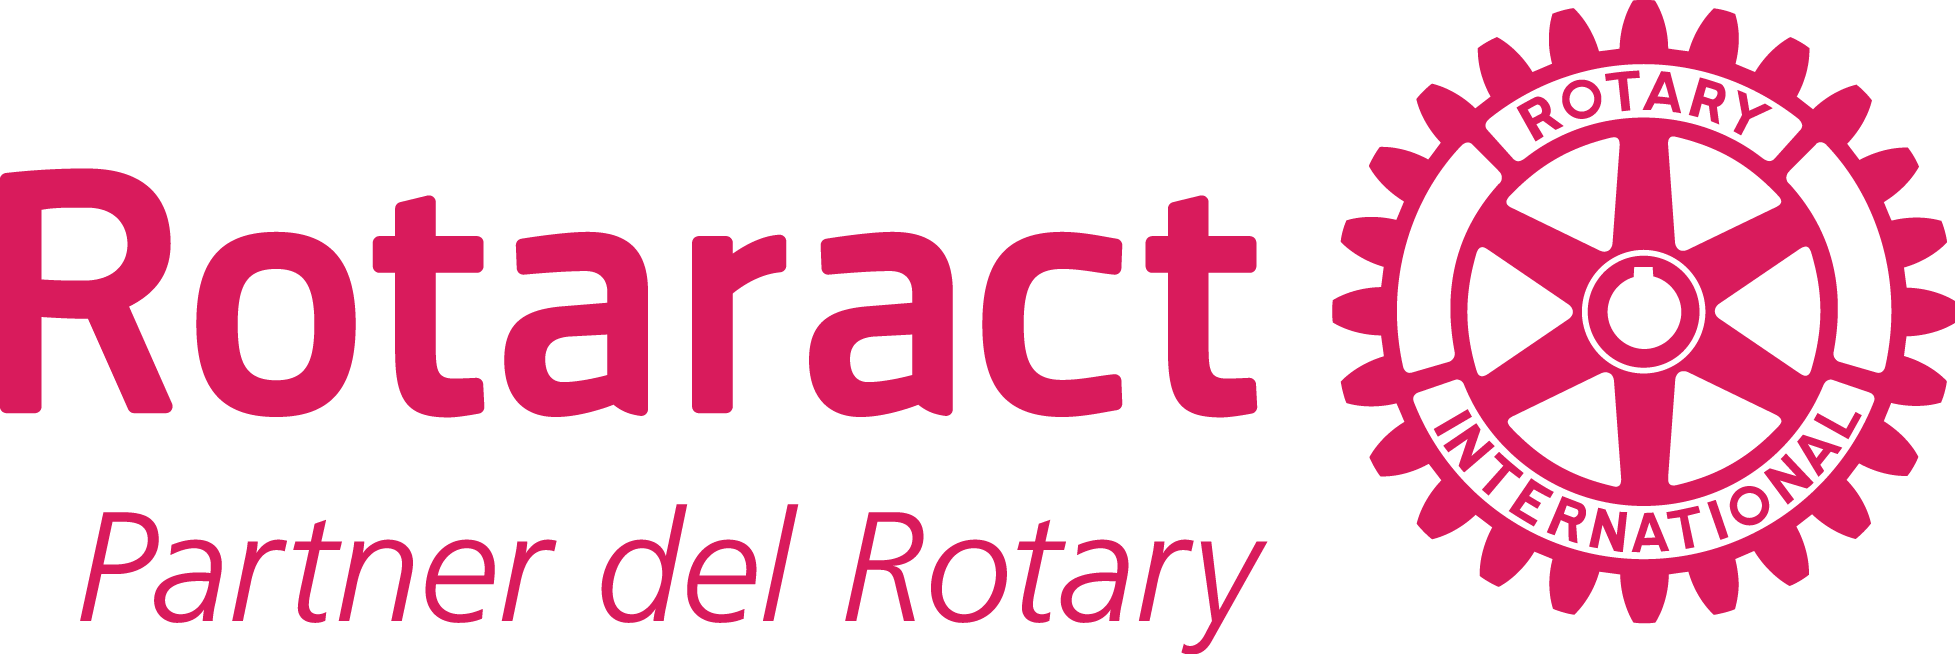 Rotaract_RGB-IT